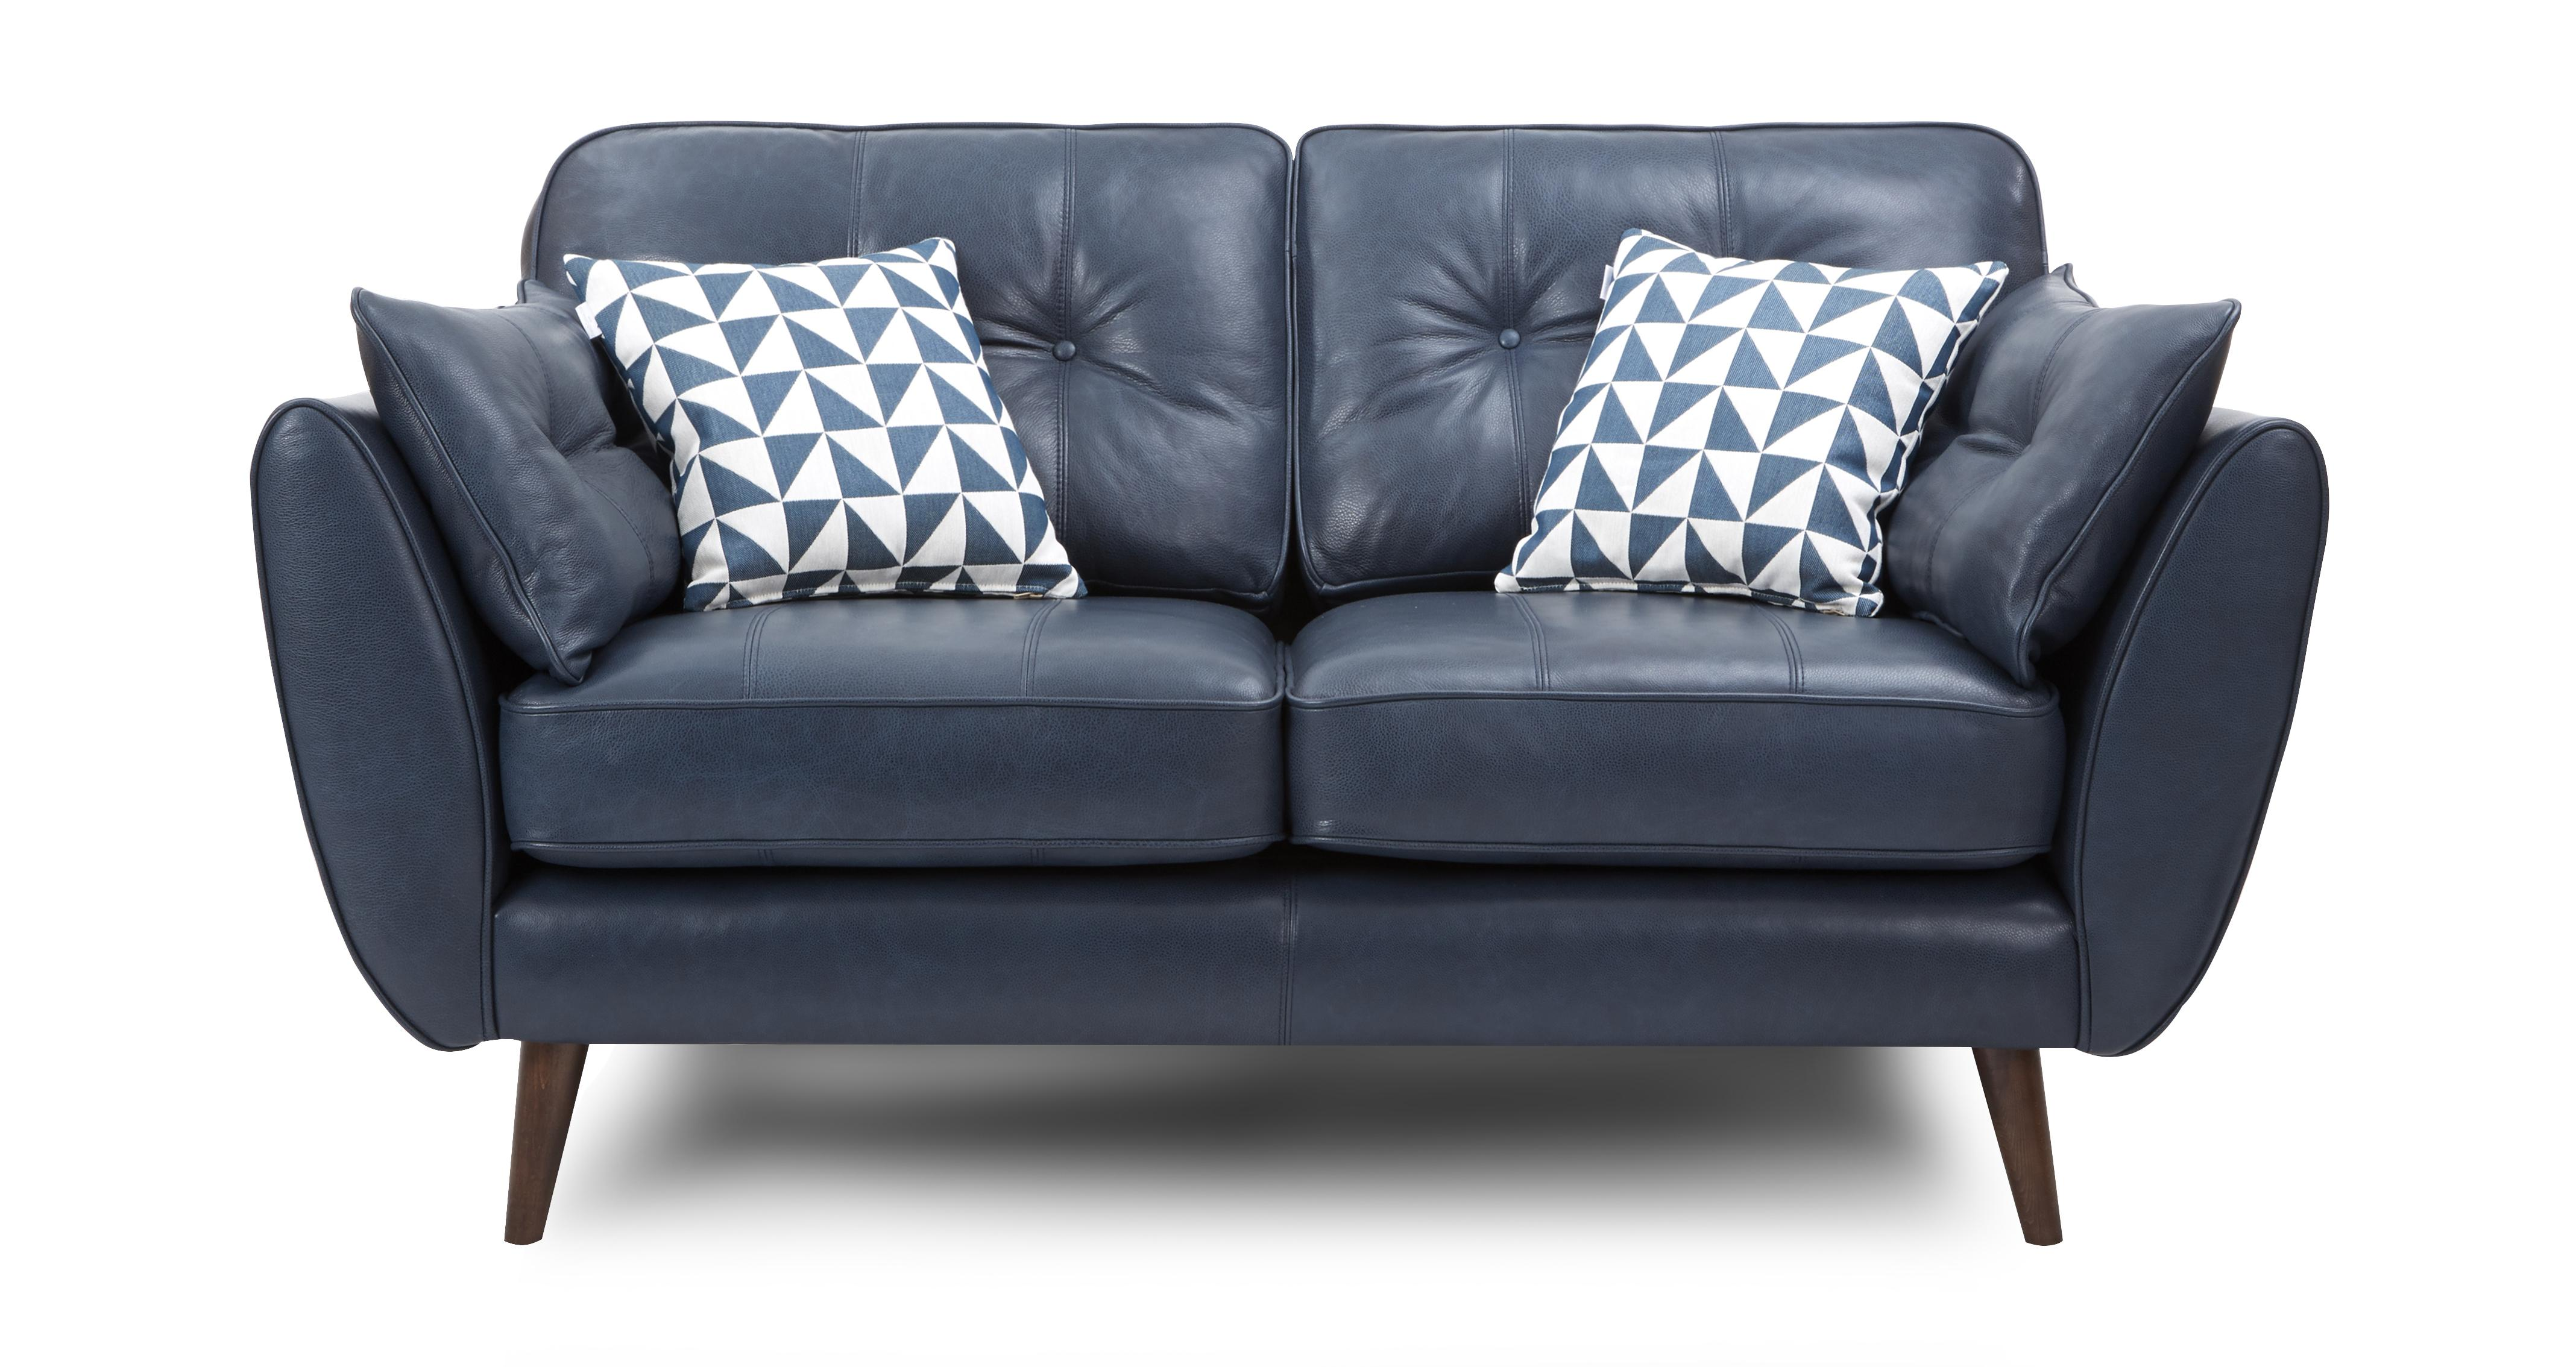 Zinc leather 2 seater sofa dfs for 2 seater leather sofa